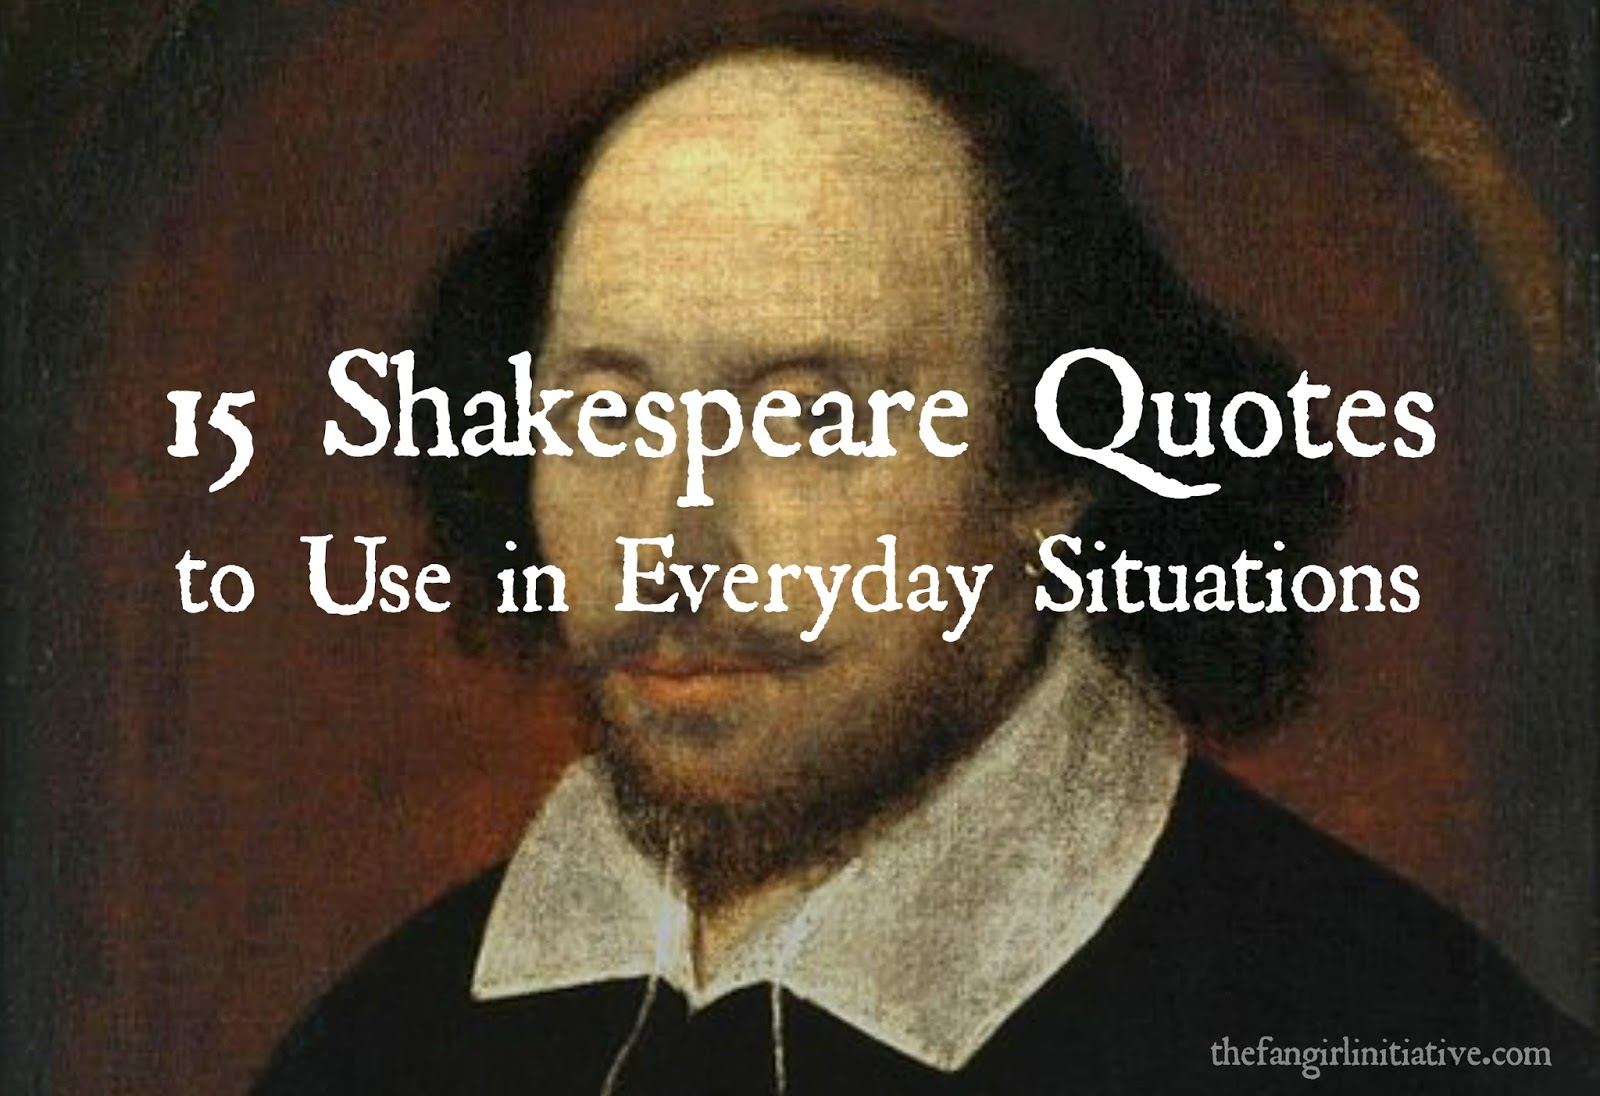 shakespeare quotes used in modern movies Allusions to shakespeare in modern movies me to find shakespeare's allusions used in modern movies or in in comics shakespeare quotes were used very very.